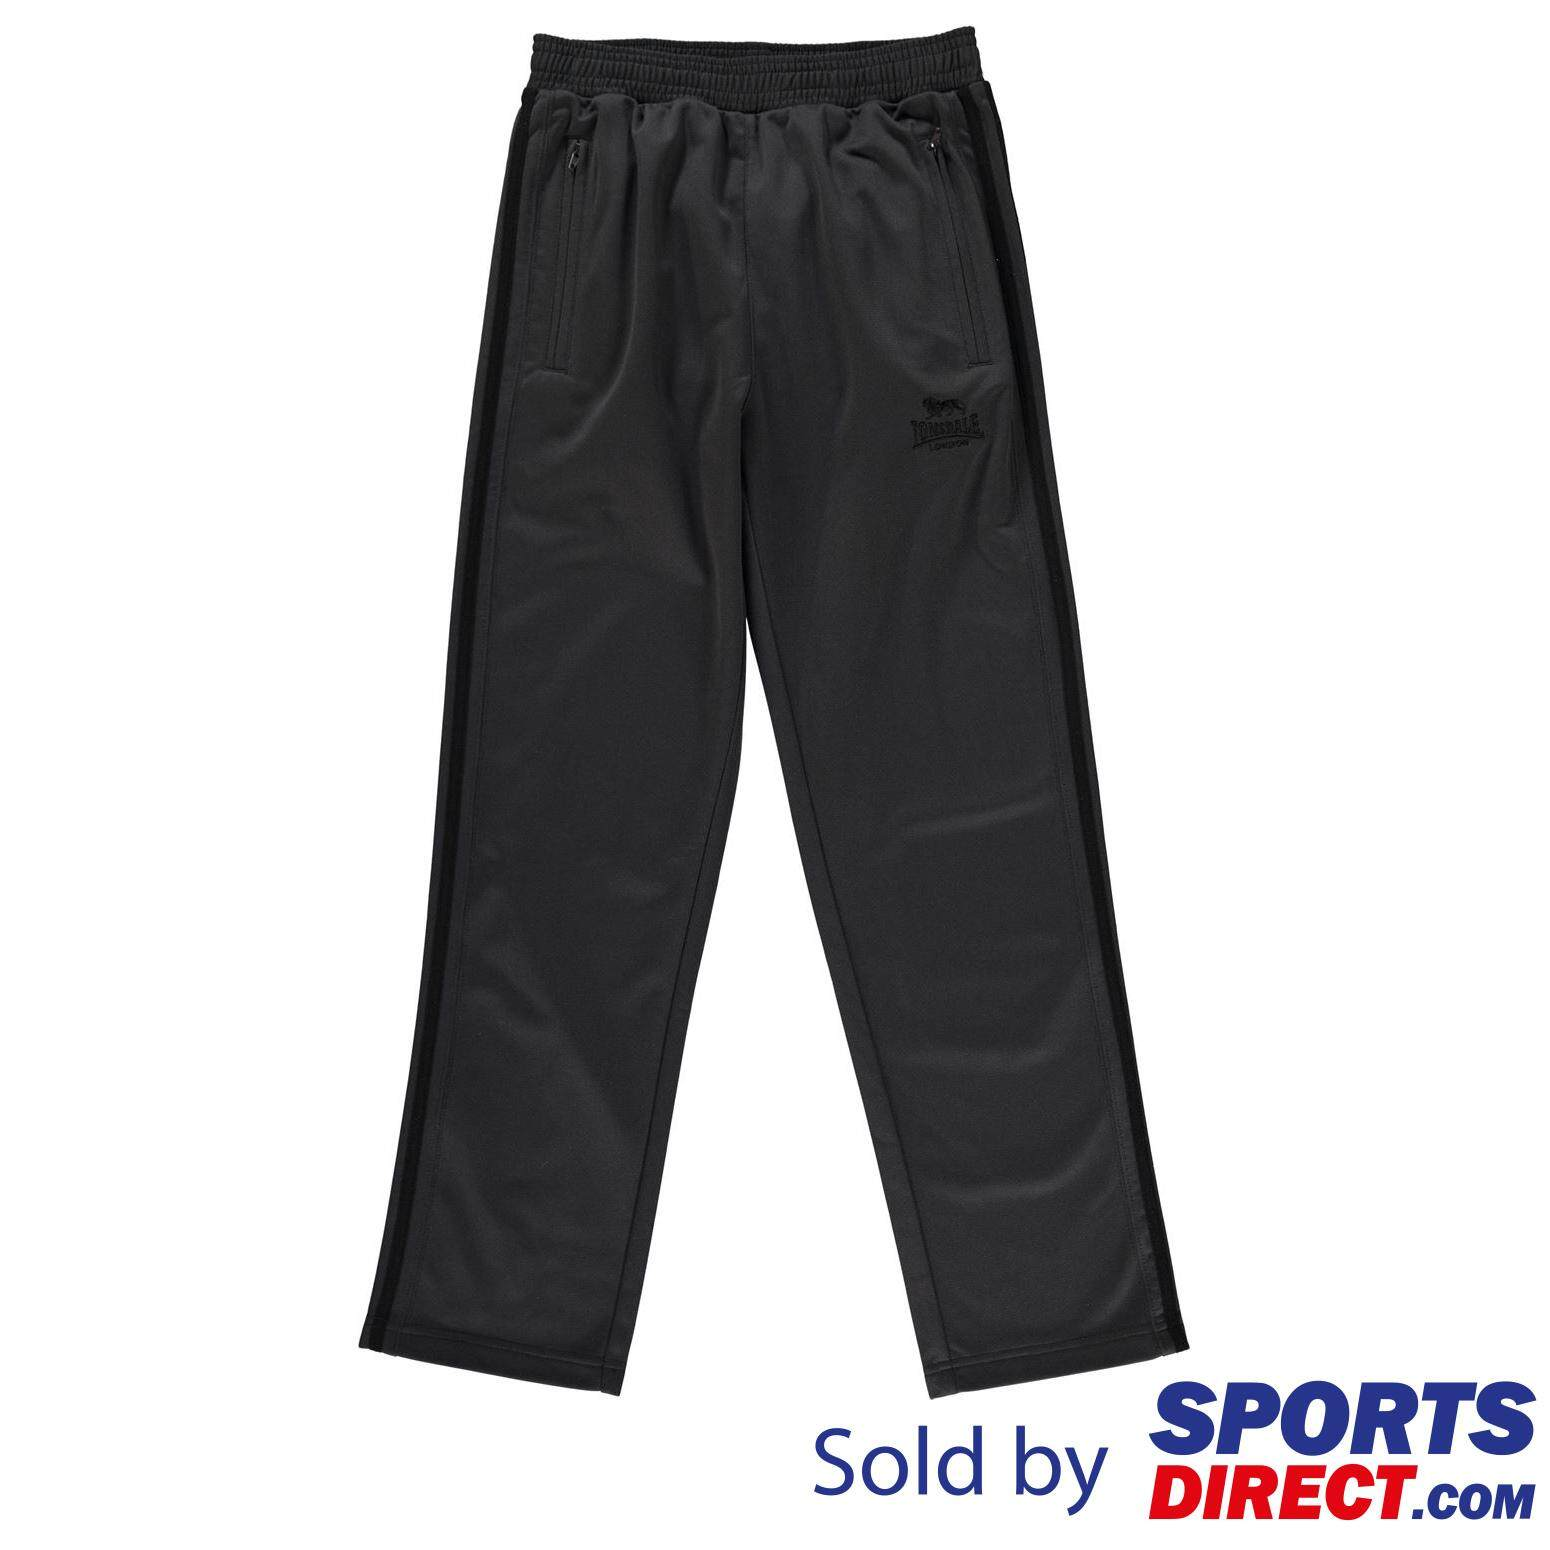 Lonsdale Kids Boys Tracksuit Pants (charcoal/black) By Sports Direct Mst Sdn Bhd.